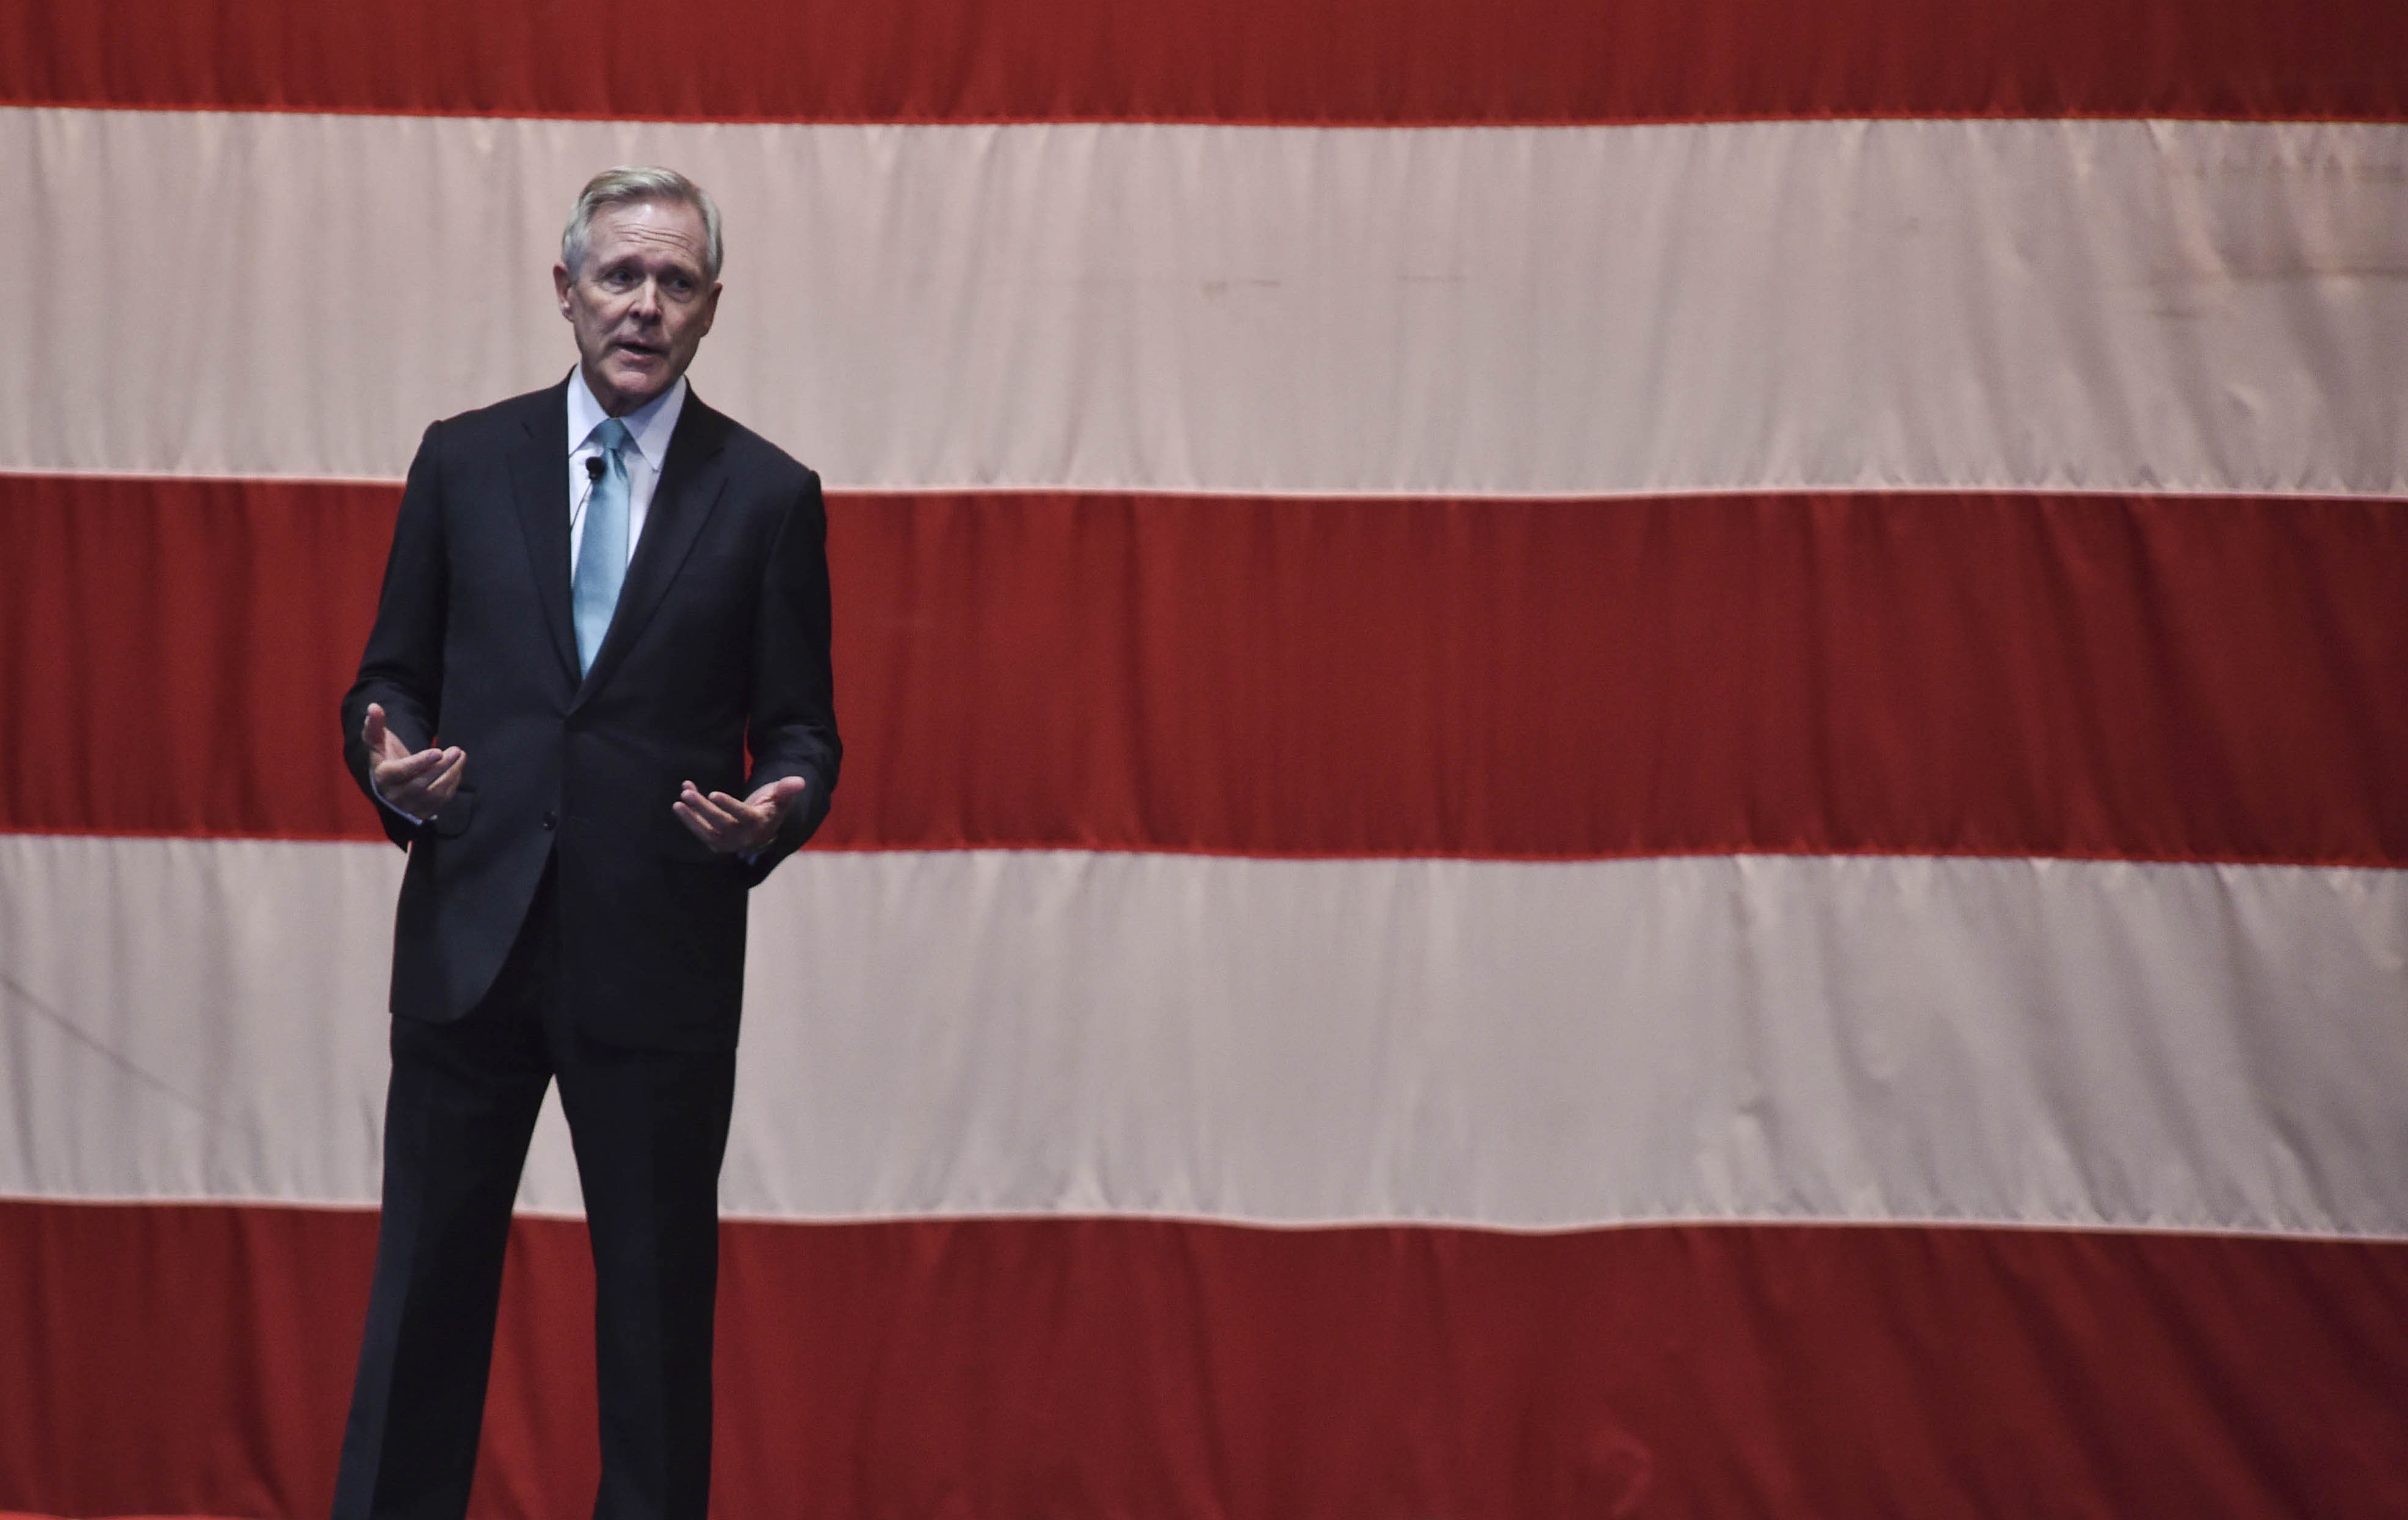 Secretary of the Navy Ray Mabus speaks during an all-hands call at Naval Base Kitsap-Bremerton on Oct. 21, 2016. US Navy